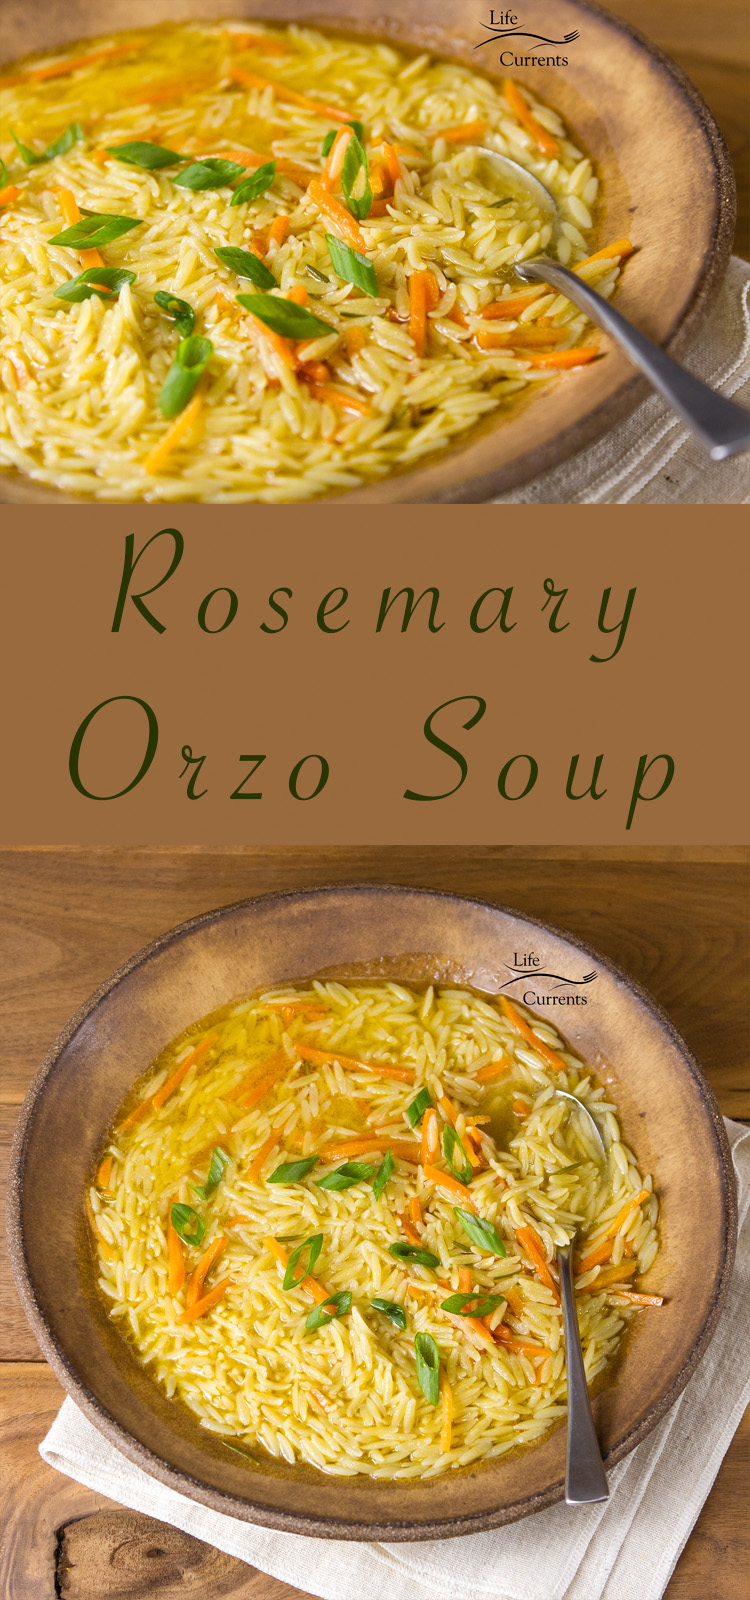 This Rosemary Orzo Soup is so easy to make, and so delicious. It's super comforting, and a bit like my version of chicken noodle soup.